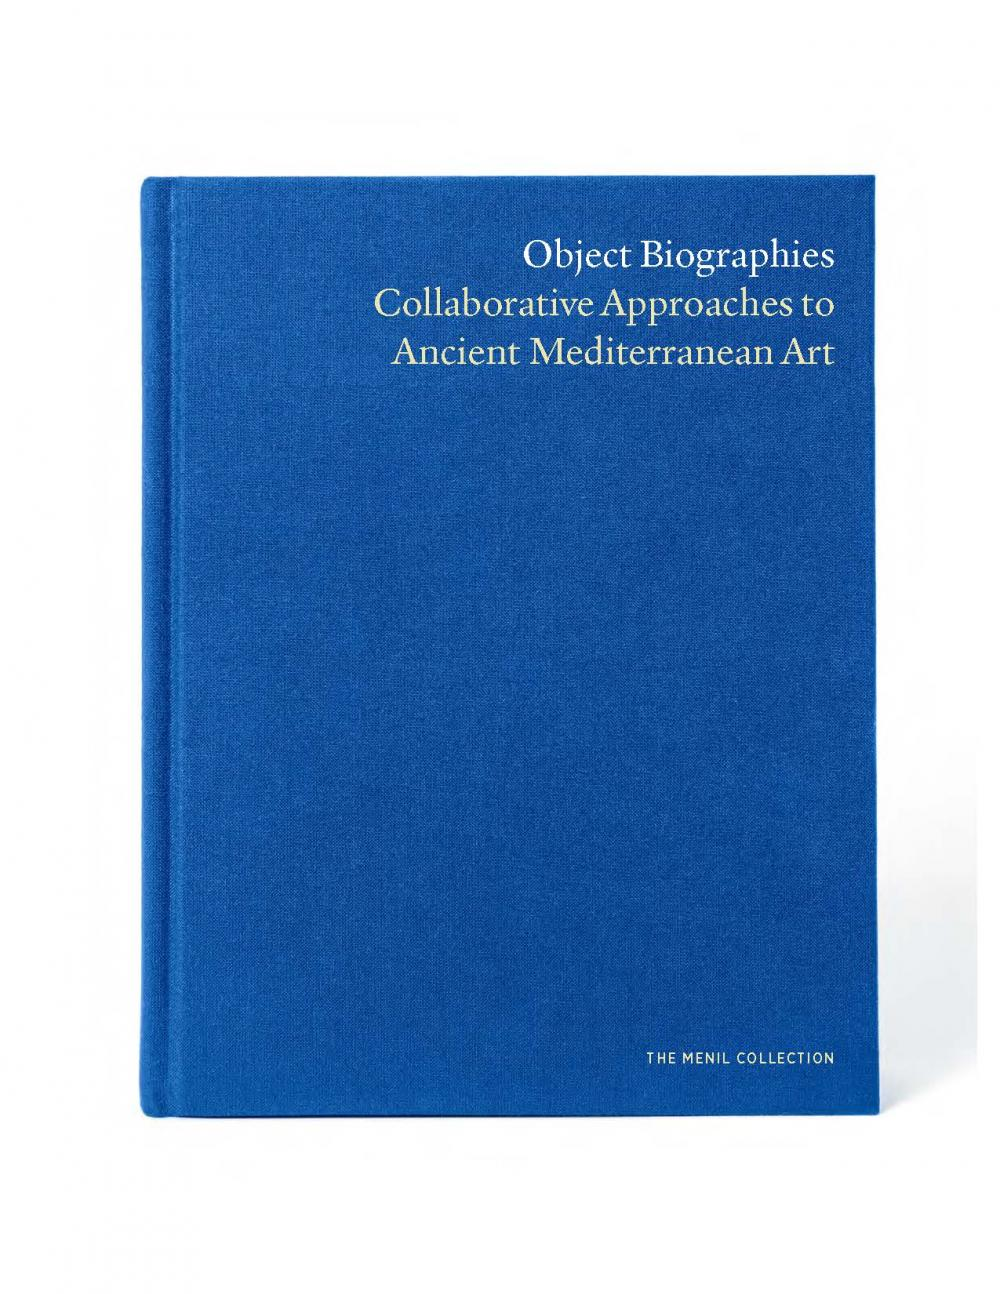 blue book cover for Yale Menil catalogue of essays with contributions from University of Texas at Austin Associate Professor in Art History Nassos Papalexandrou